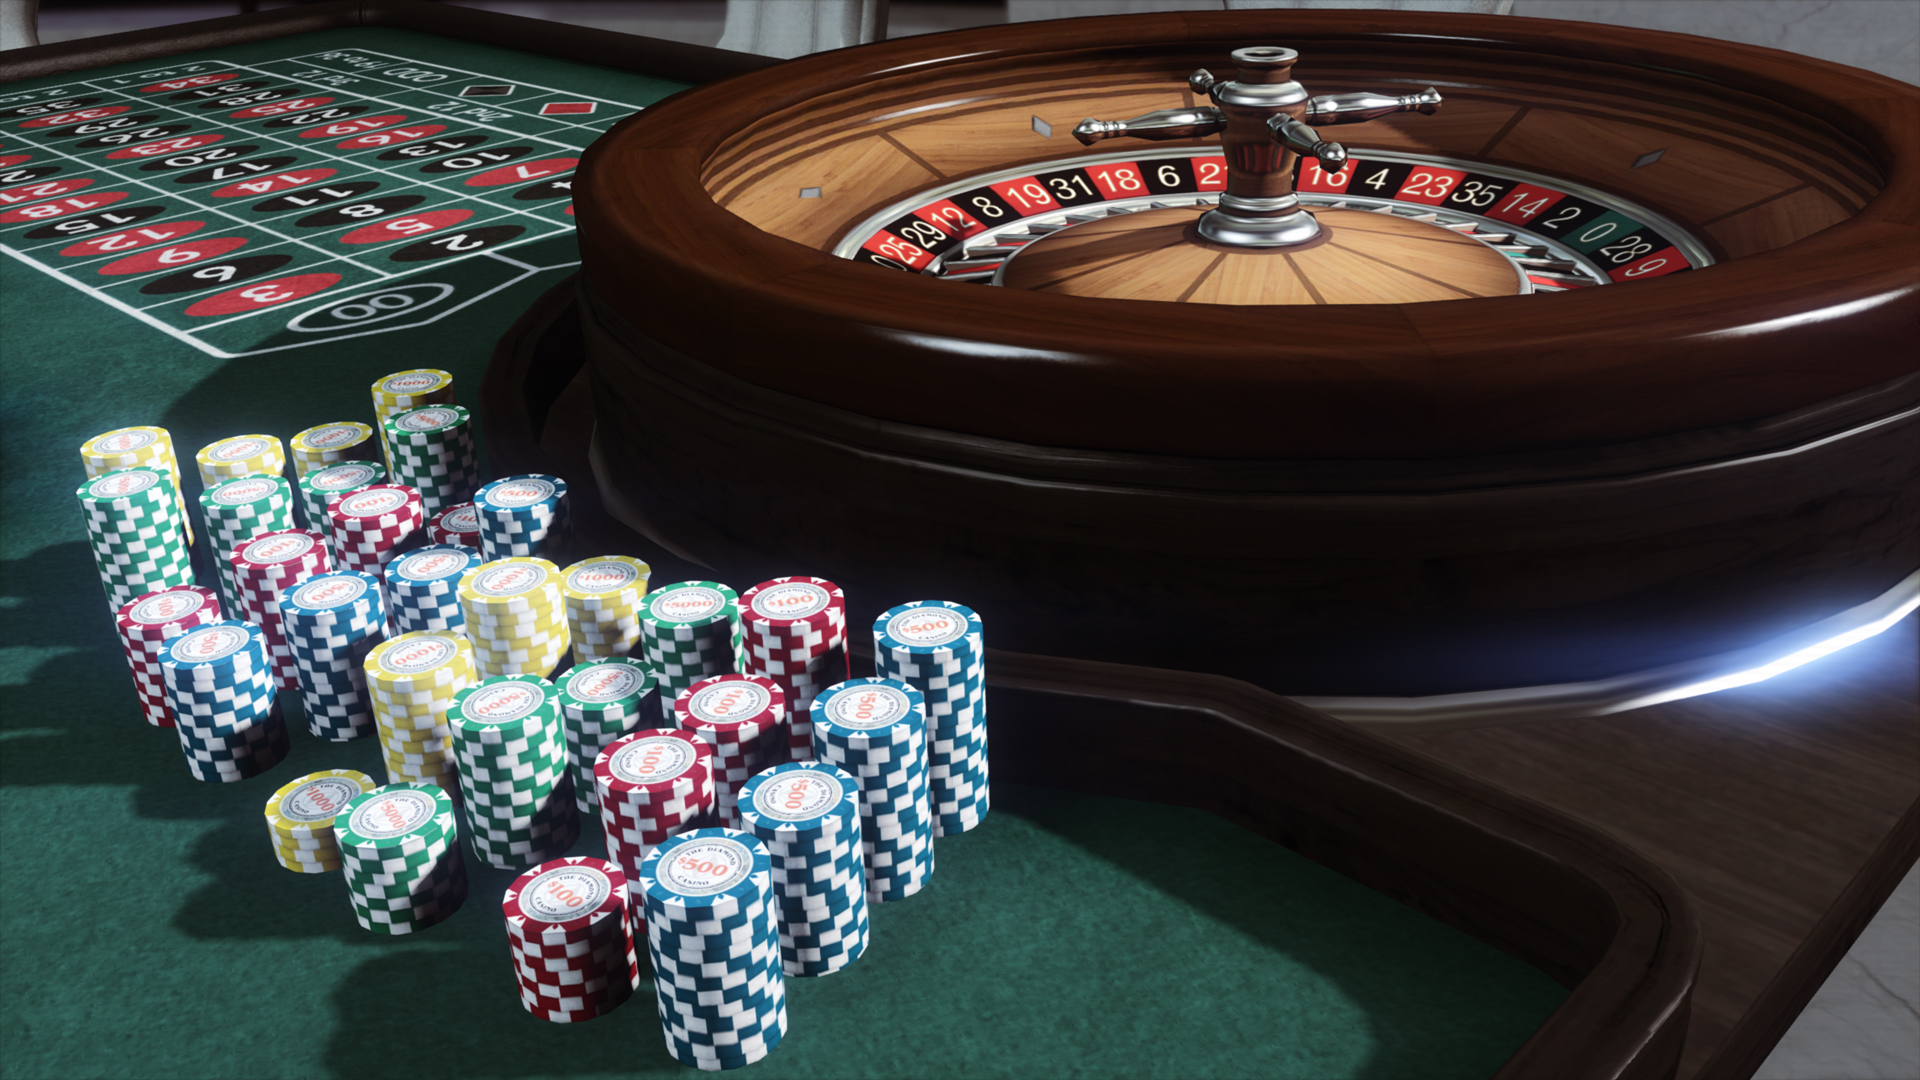 Steps to become a famous player in the online casino field